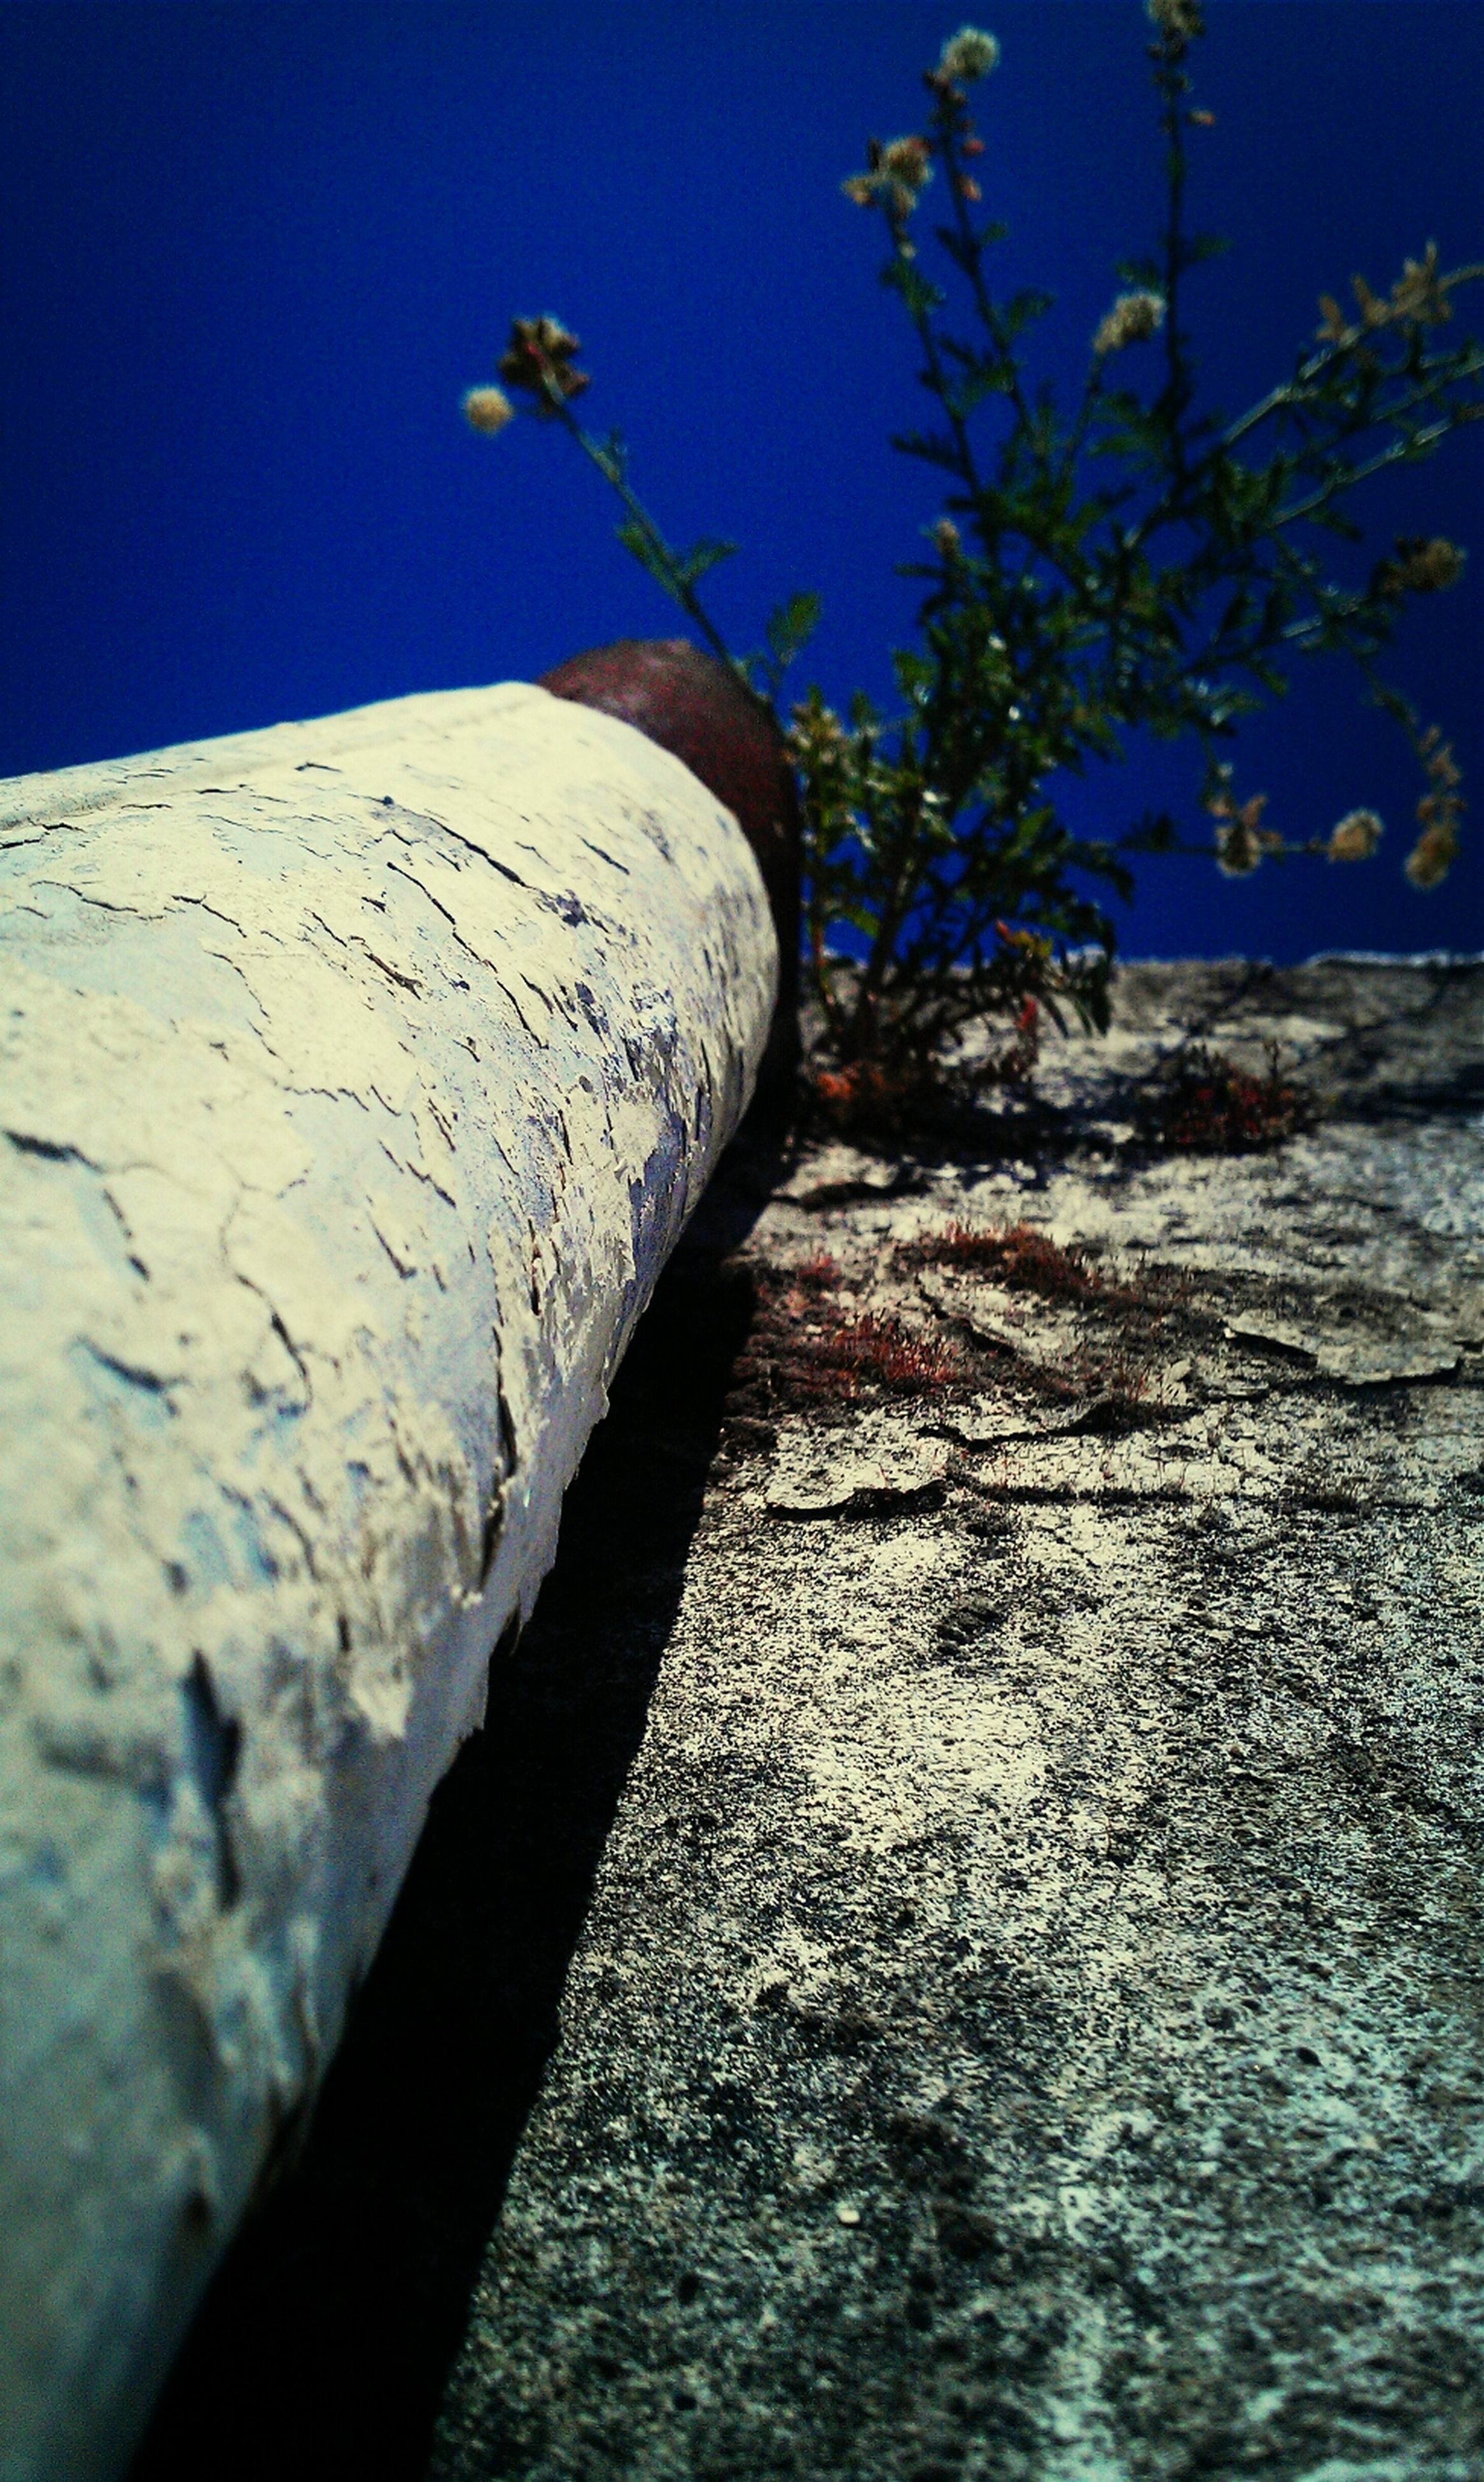 blue, close-up, clear sky, built structure, sunlight, day, no people, outdoors, abandoned, low angle view, metal, architecture, damaged, old, sky, shadow, nature, wood - material, wall - building feature, weathered